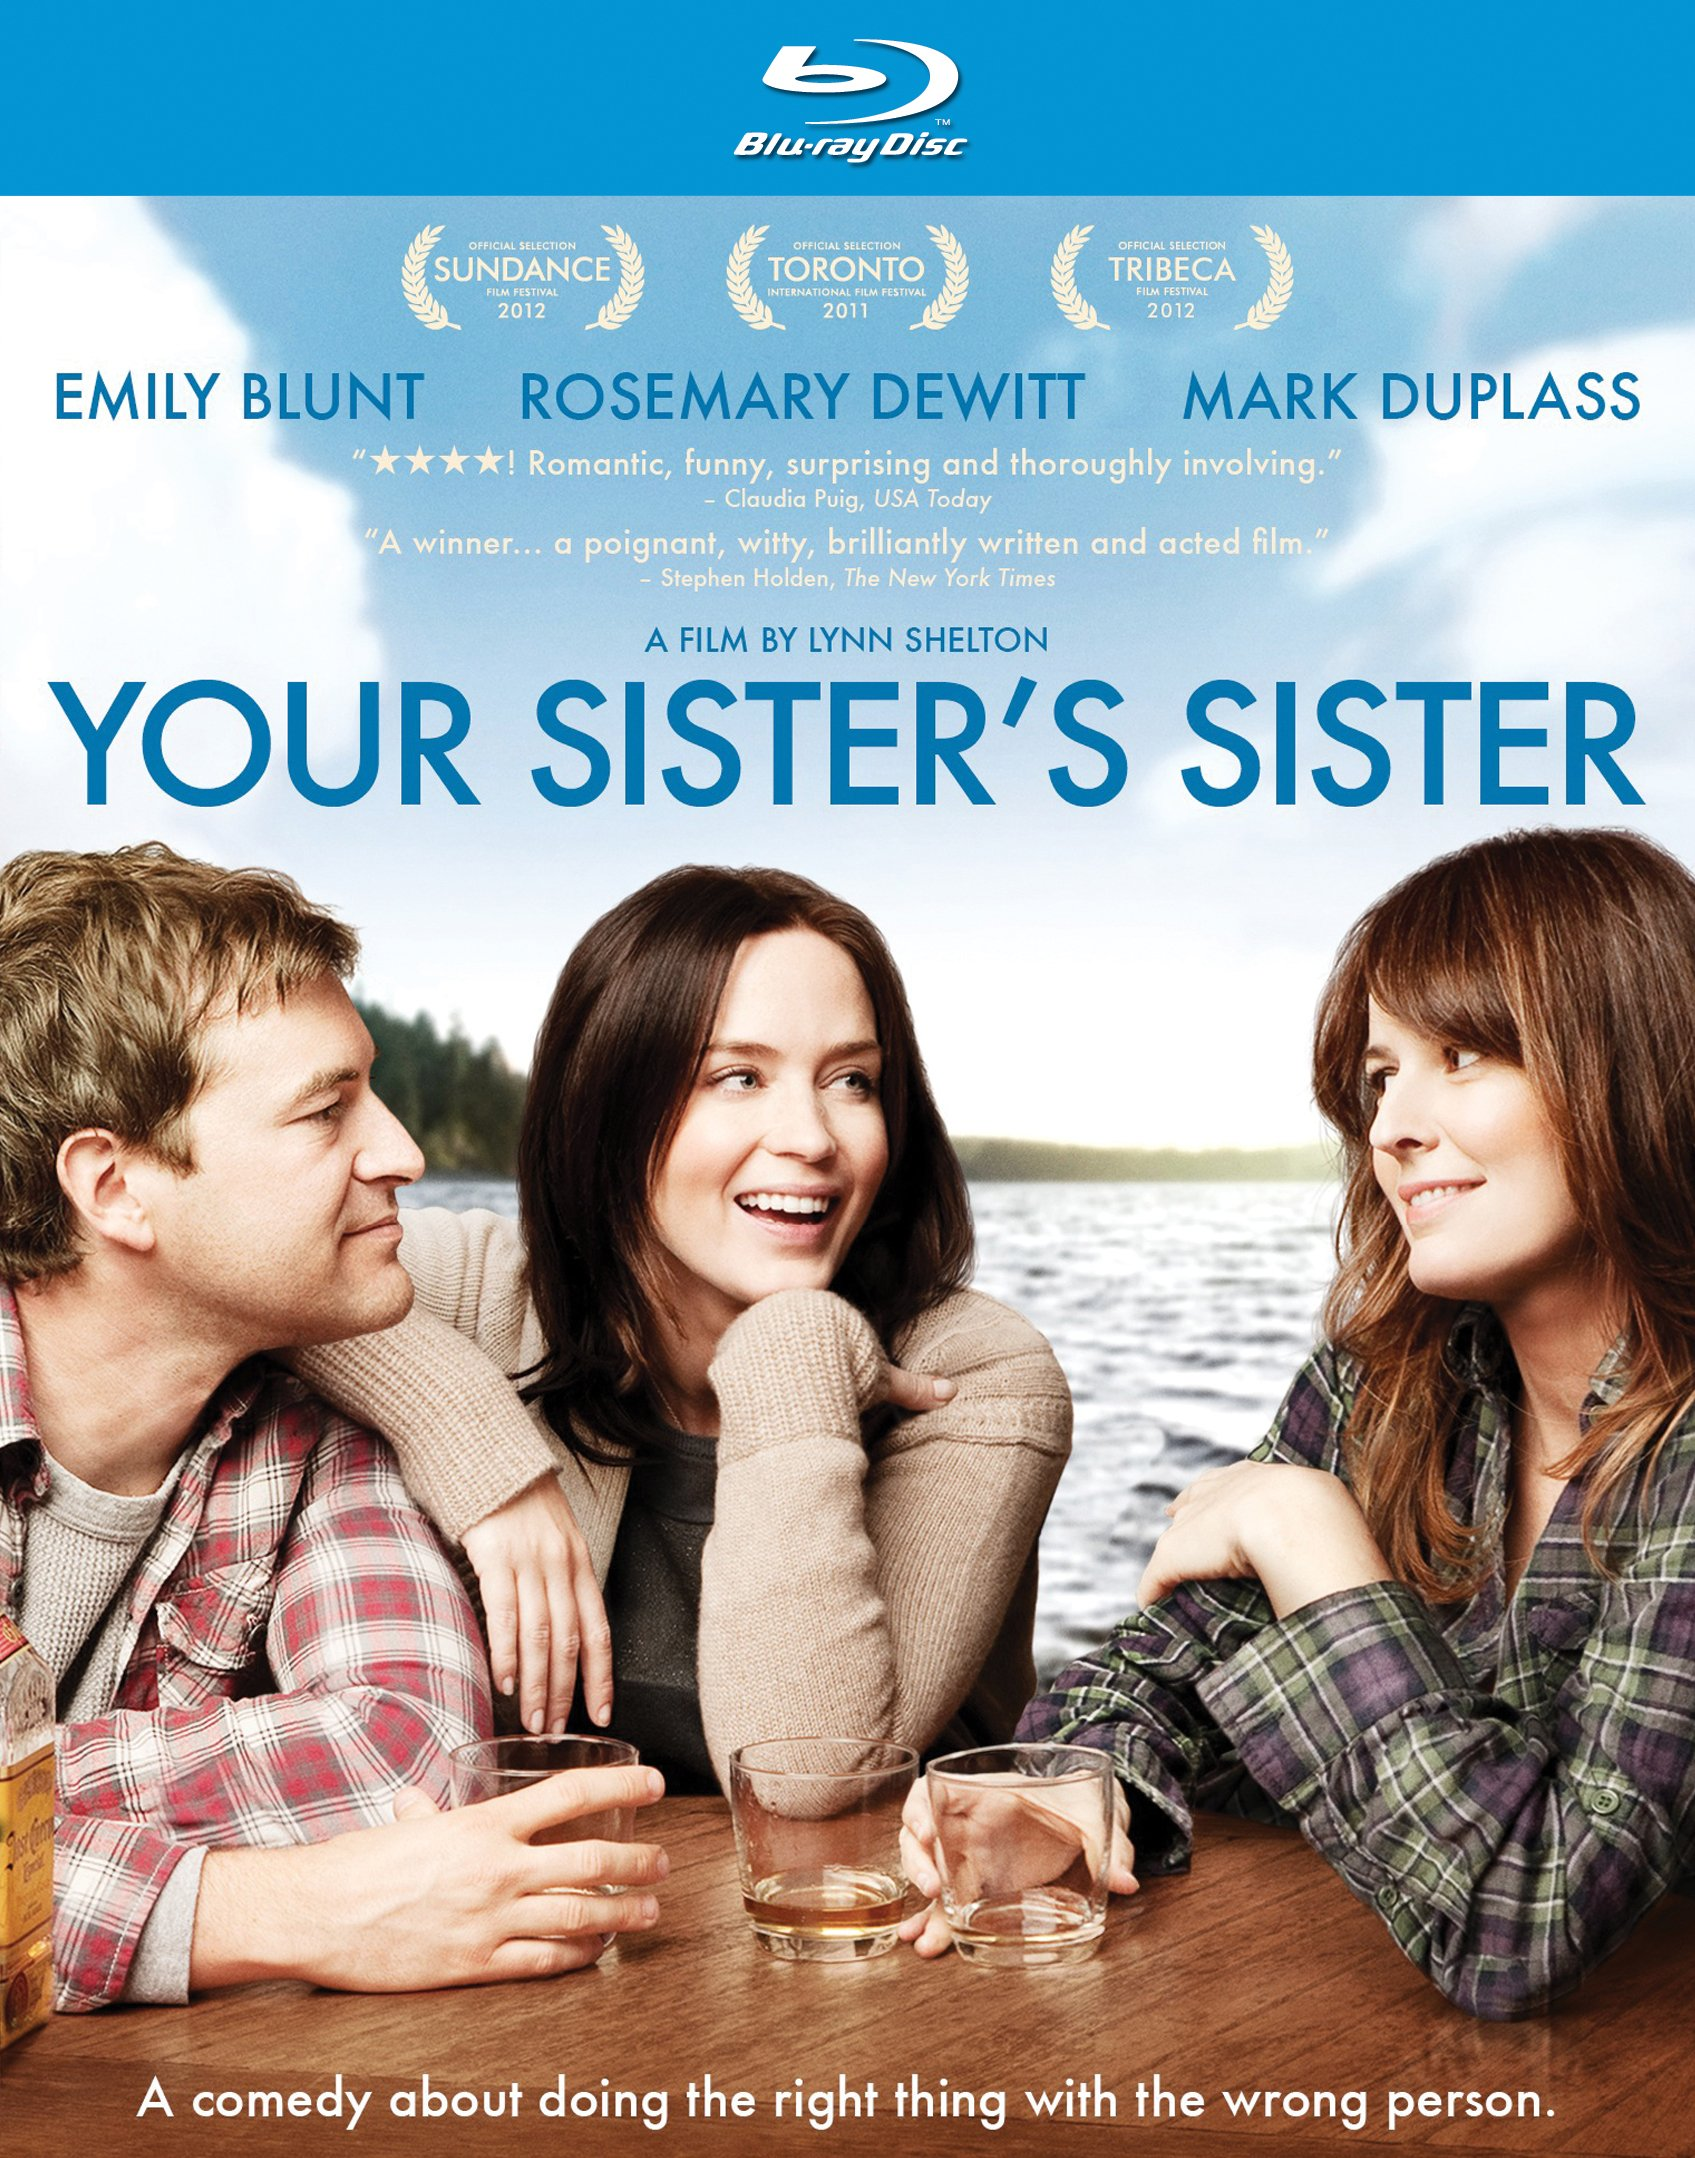 Blu-ray : Your Sister's Sister (Blu-ray)